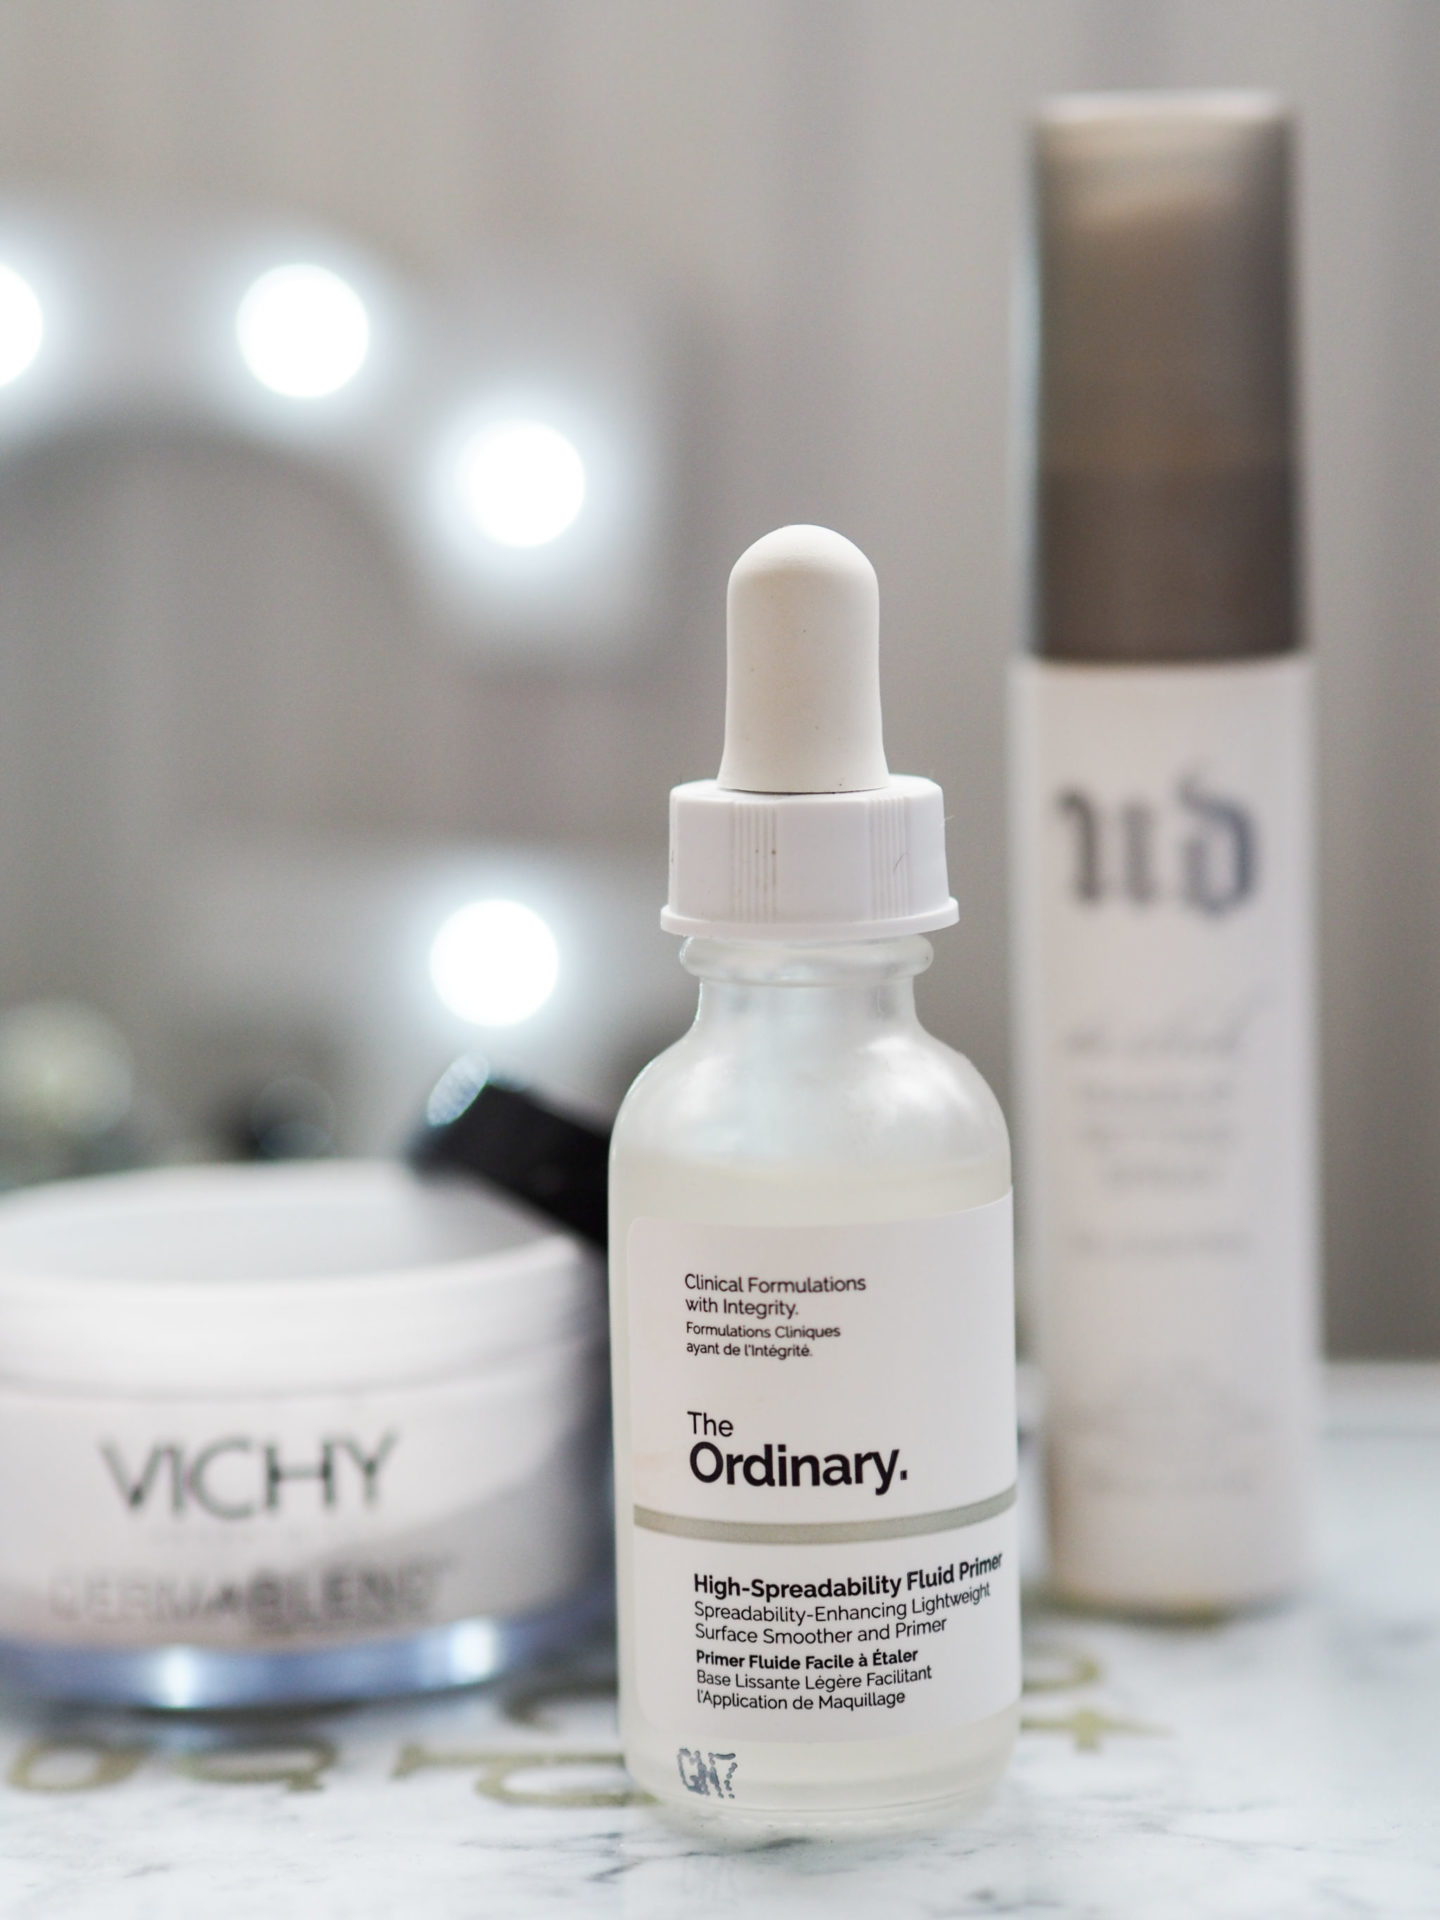 The Ordinary Fluid Primer